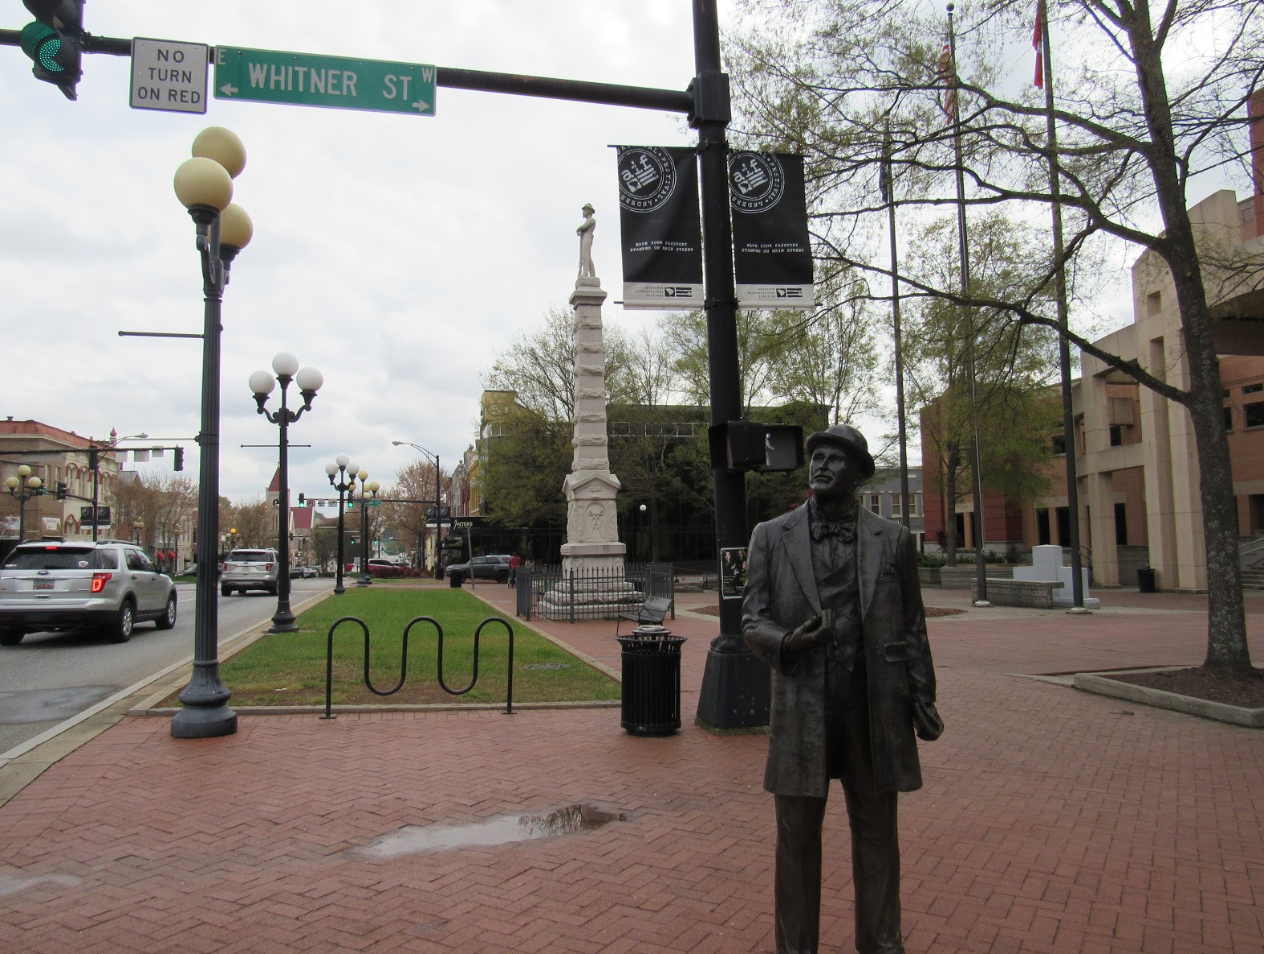 A statue of William C. Whitner, an engineer who helped bring electricity to Anderson, stands in front of a 35-foot Confederate statue. Both are located in front of the Anderson County Courthouse in Anderson City, South Carolina. Capital News Service photo by Lindsey Feingold.